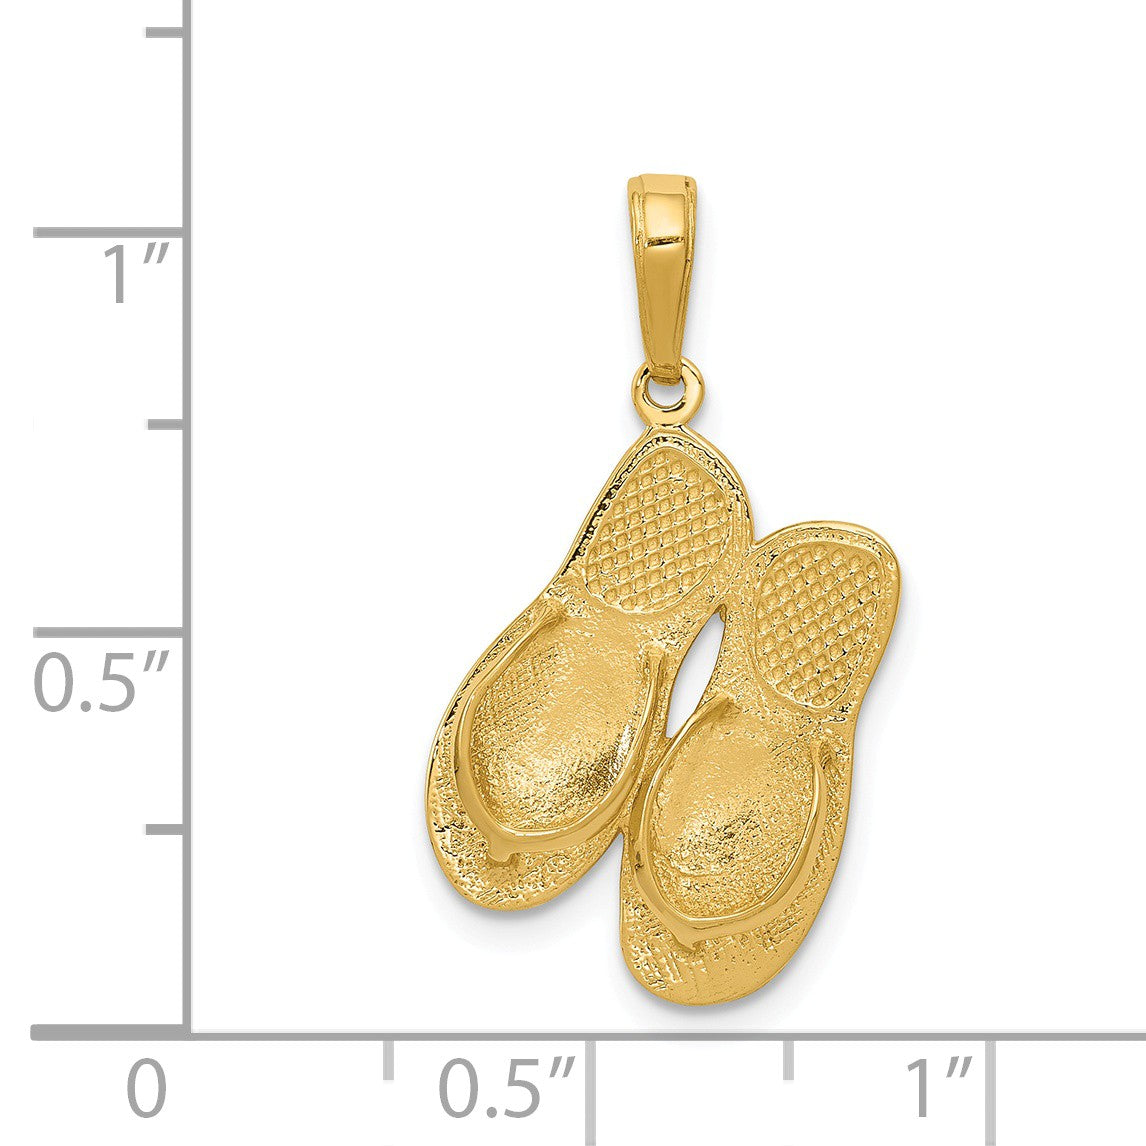 Alternate view of the 14k Yellow Gold 3D Maui Aloha Flip Flops Pendant by The Black Bow Jewelry Co.